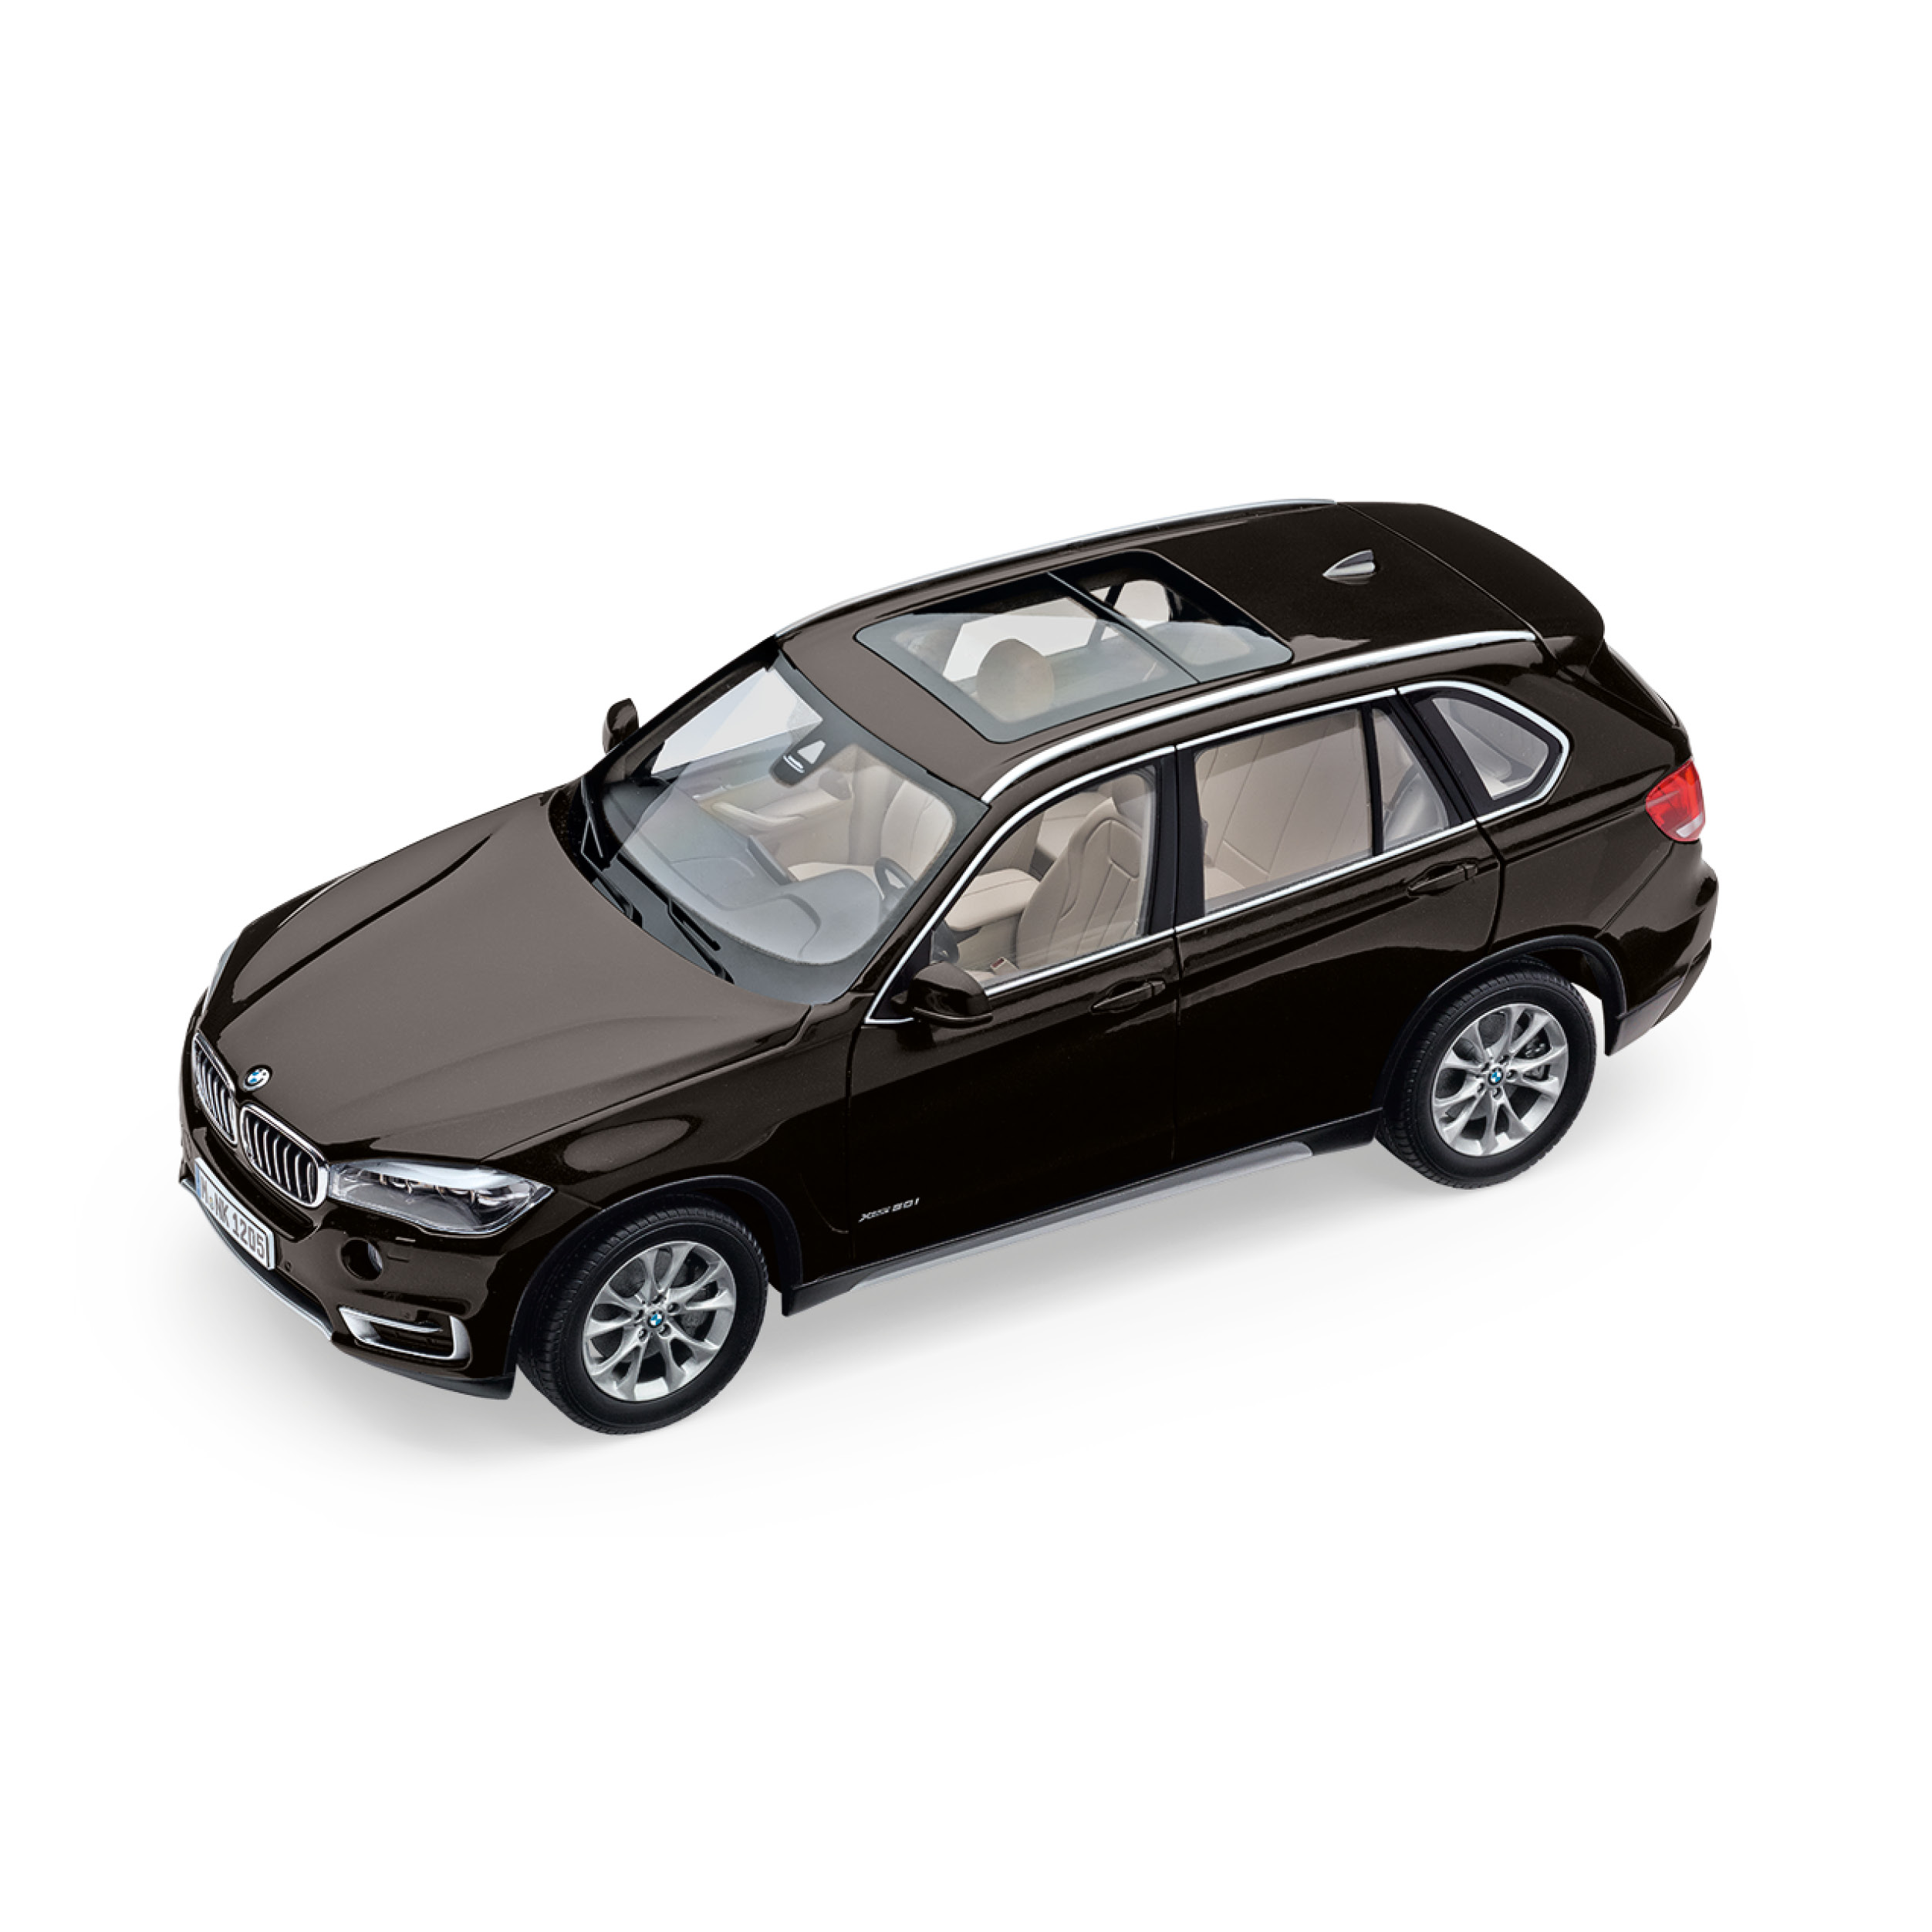 bmw x5 f15 massstab 1 18 massstab 1 43 massstab 1 64 hutter dynamics. Black Bedroom Furniture Sets. Home Design Ideas